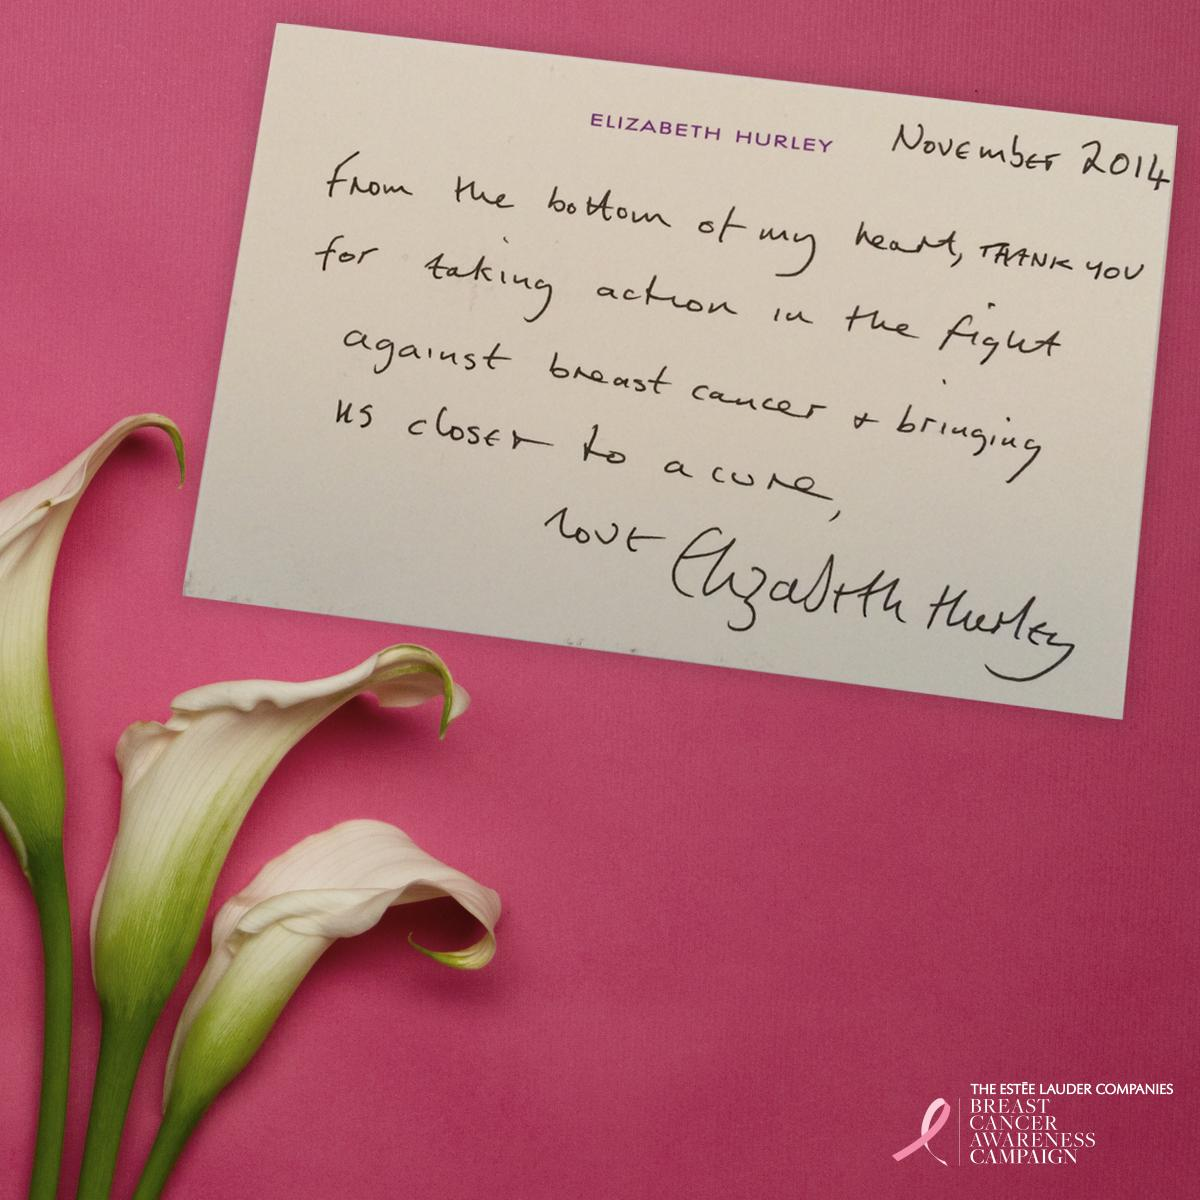 Elizabeth Hurley @elizabethhurley: RT @BCAcampaign: A note of thanks from our Global Ambassador @ElizabethHurley. #BCAstrength http://t.co/xLEpDdvyH9